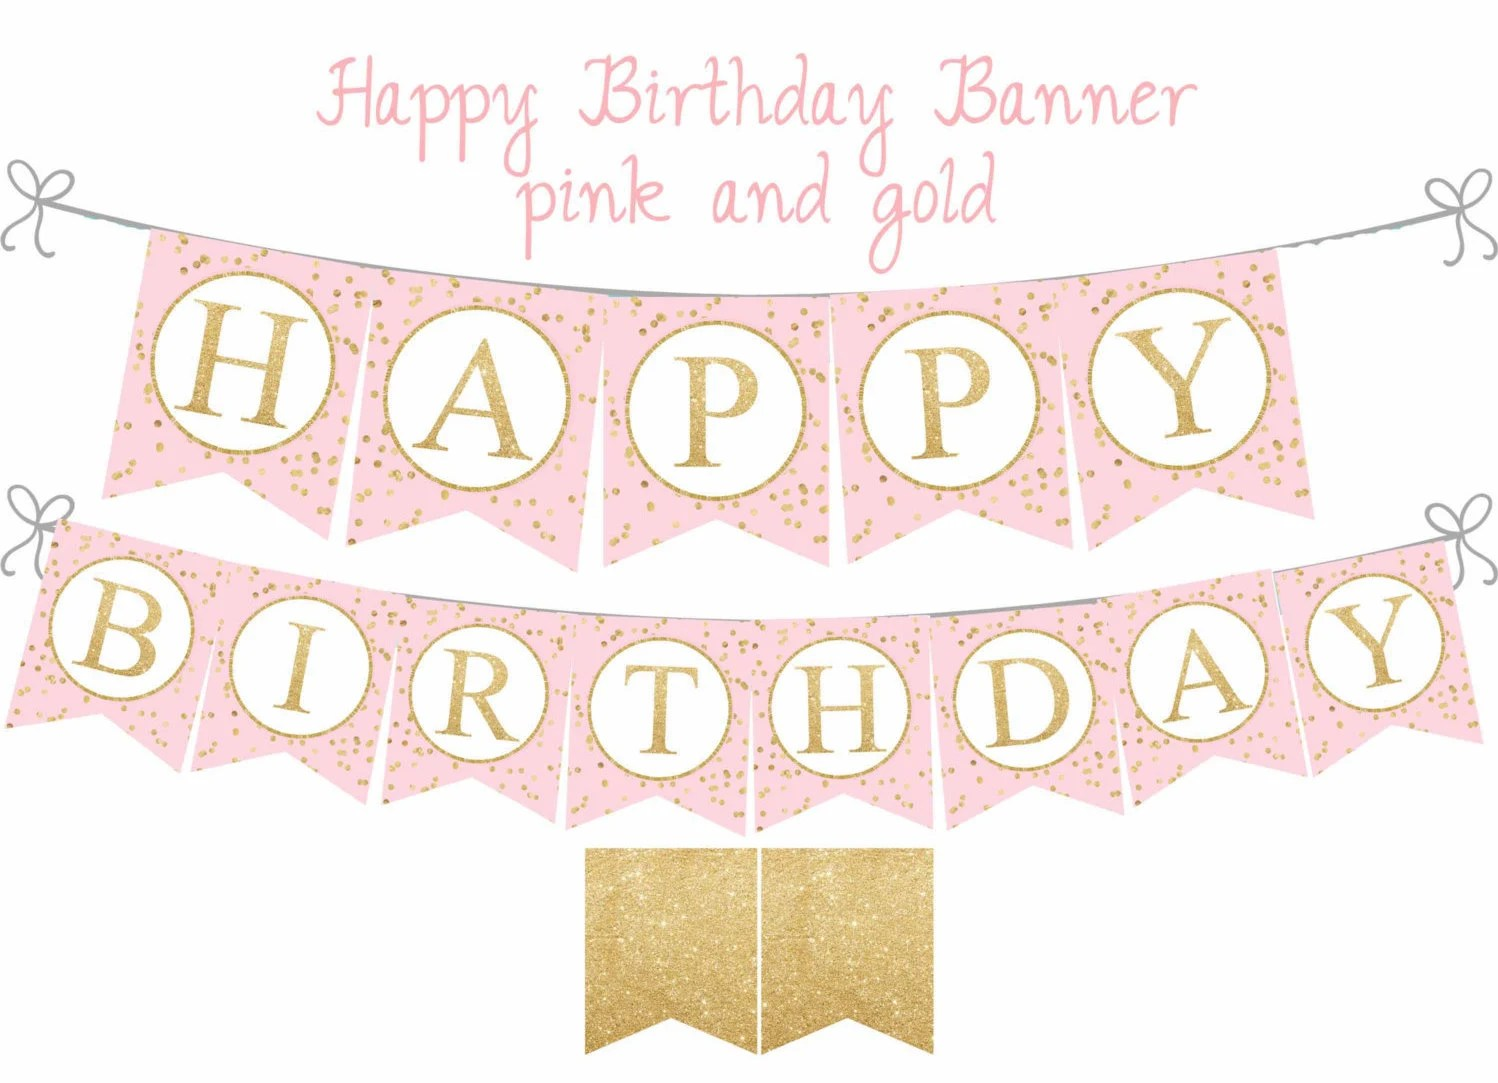 Pink And Gold Happy Birthday Banner Pink And Gold Etsy